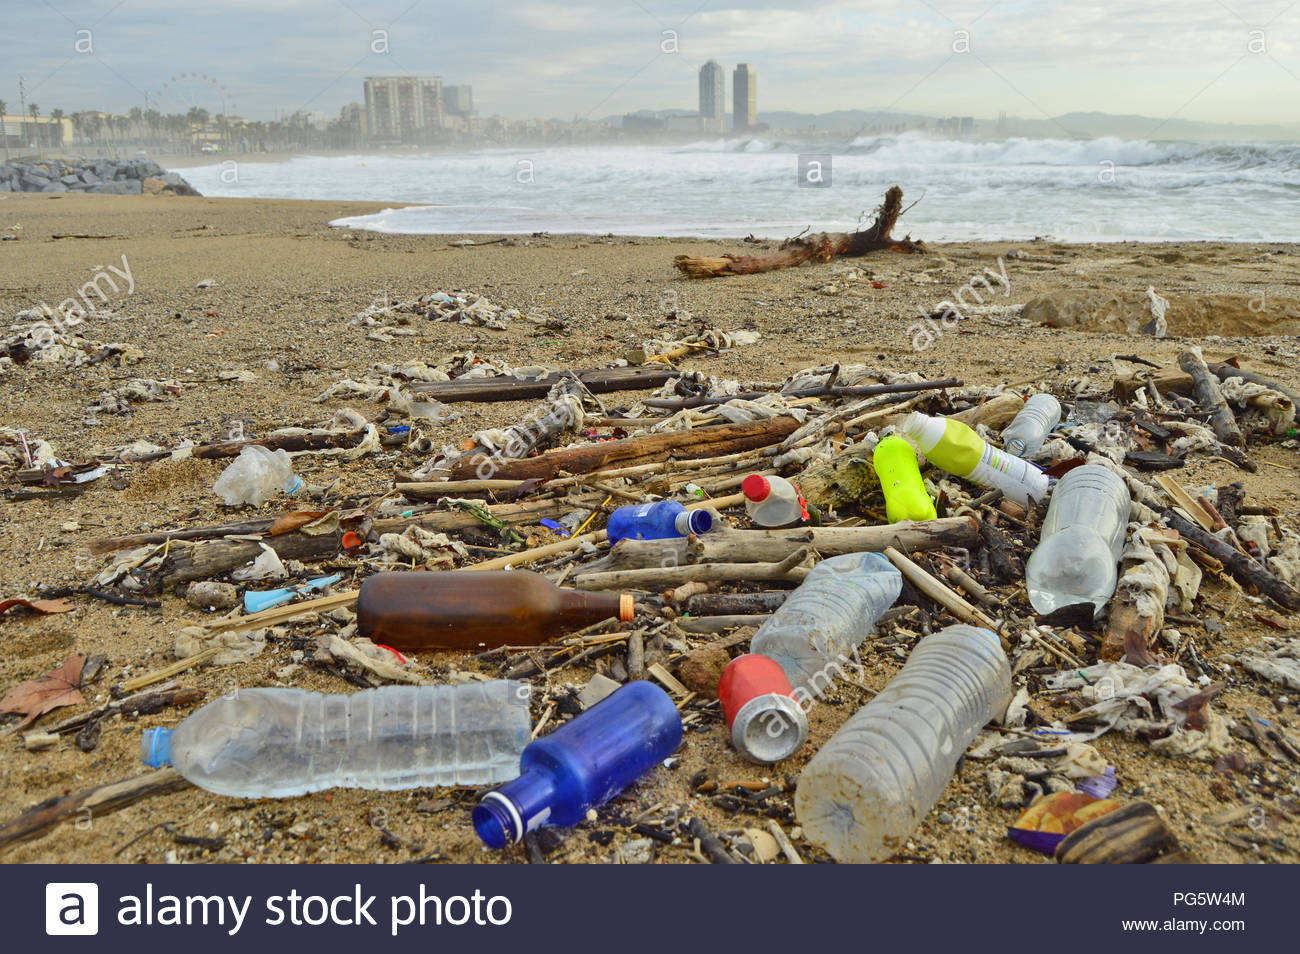 Marine debris plastic rubbish washed up on Barcelona beach in Spain Europe. - Stock Image